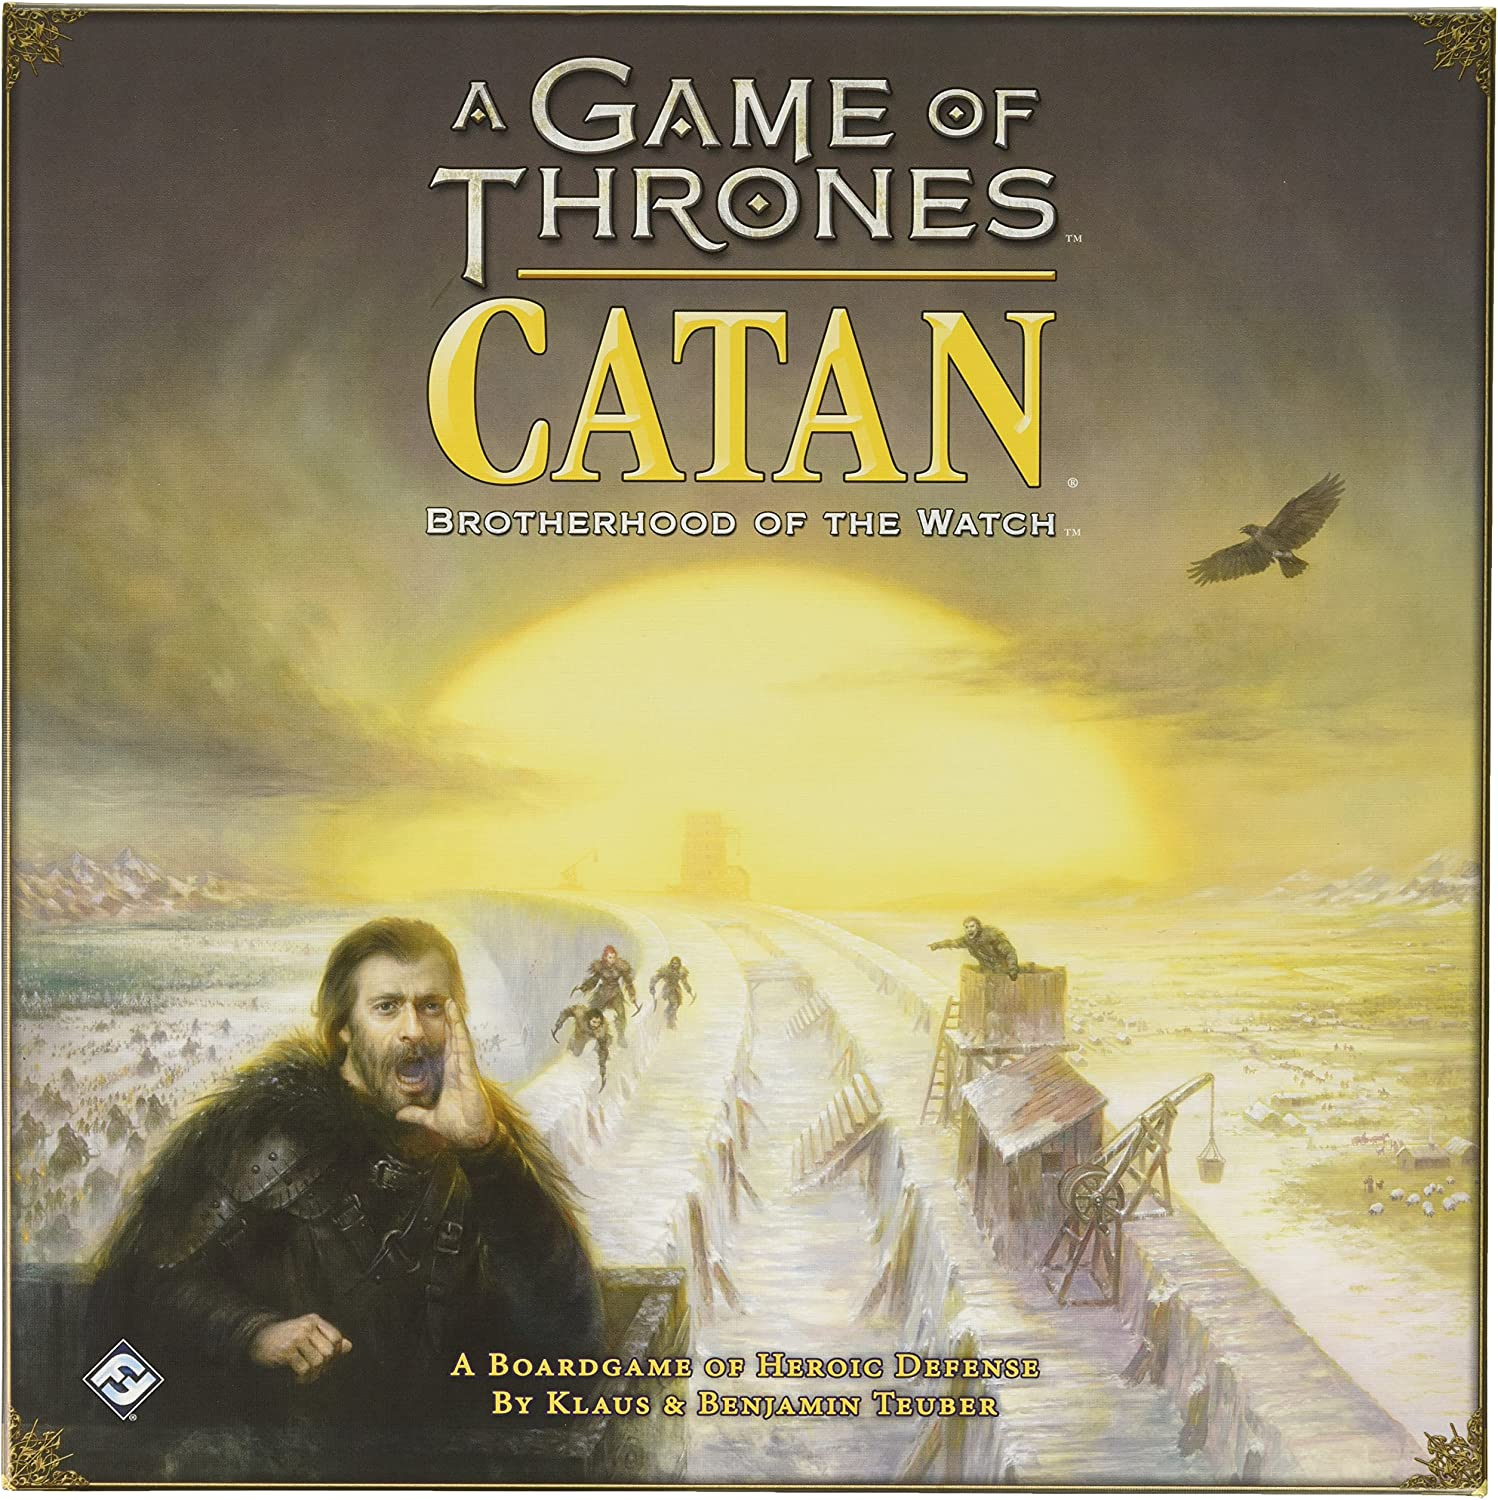 Catan Games of Thrones CN3015 Bredherhood of the Watch